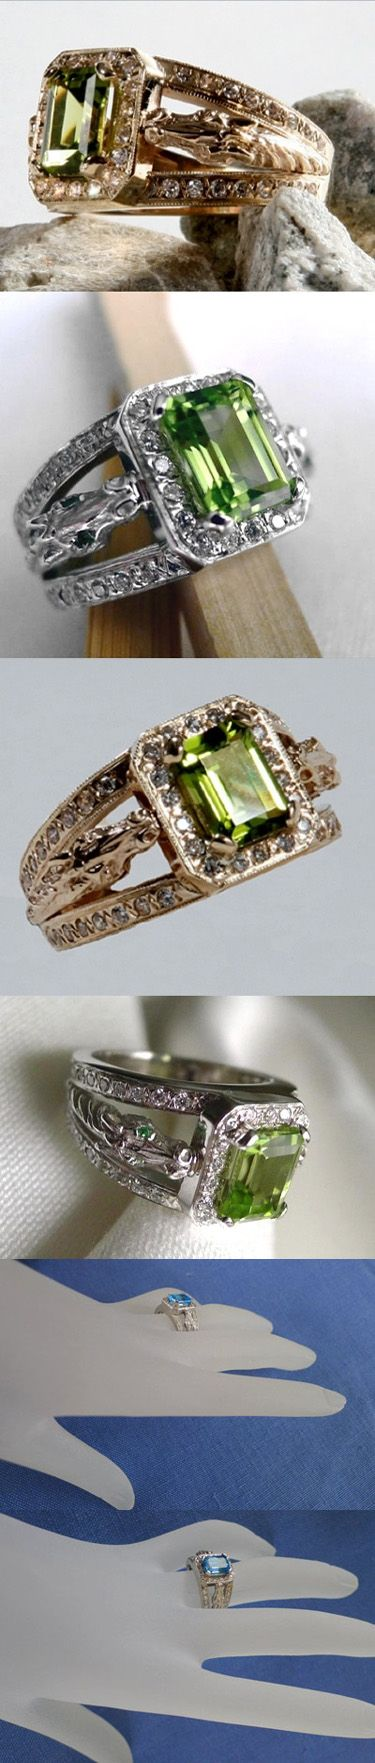 86 best Horse Rings and Equestrian Rings for Horse Lovers images on